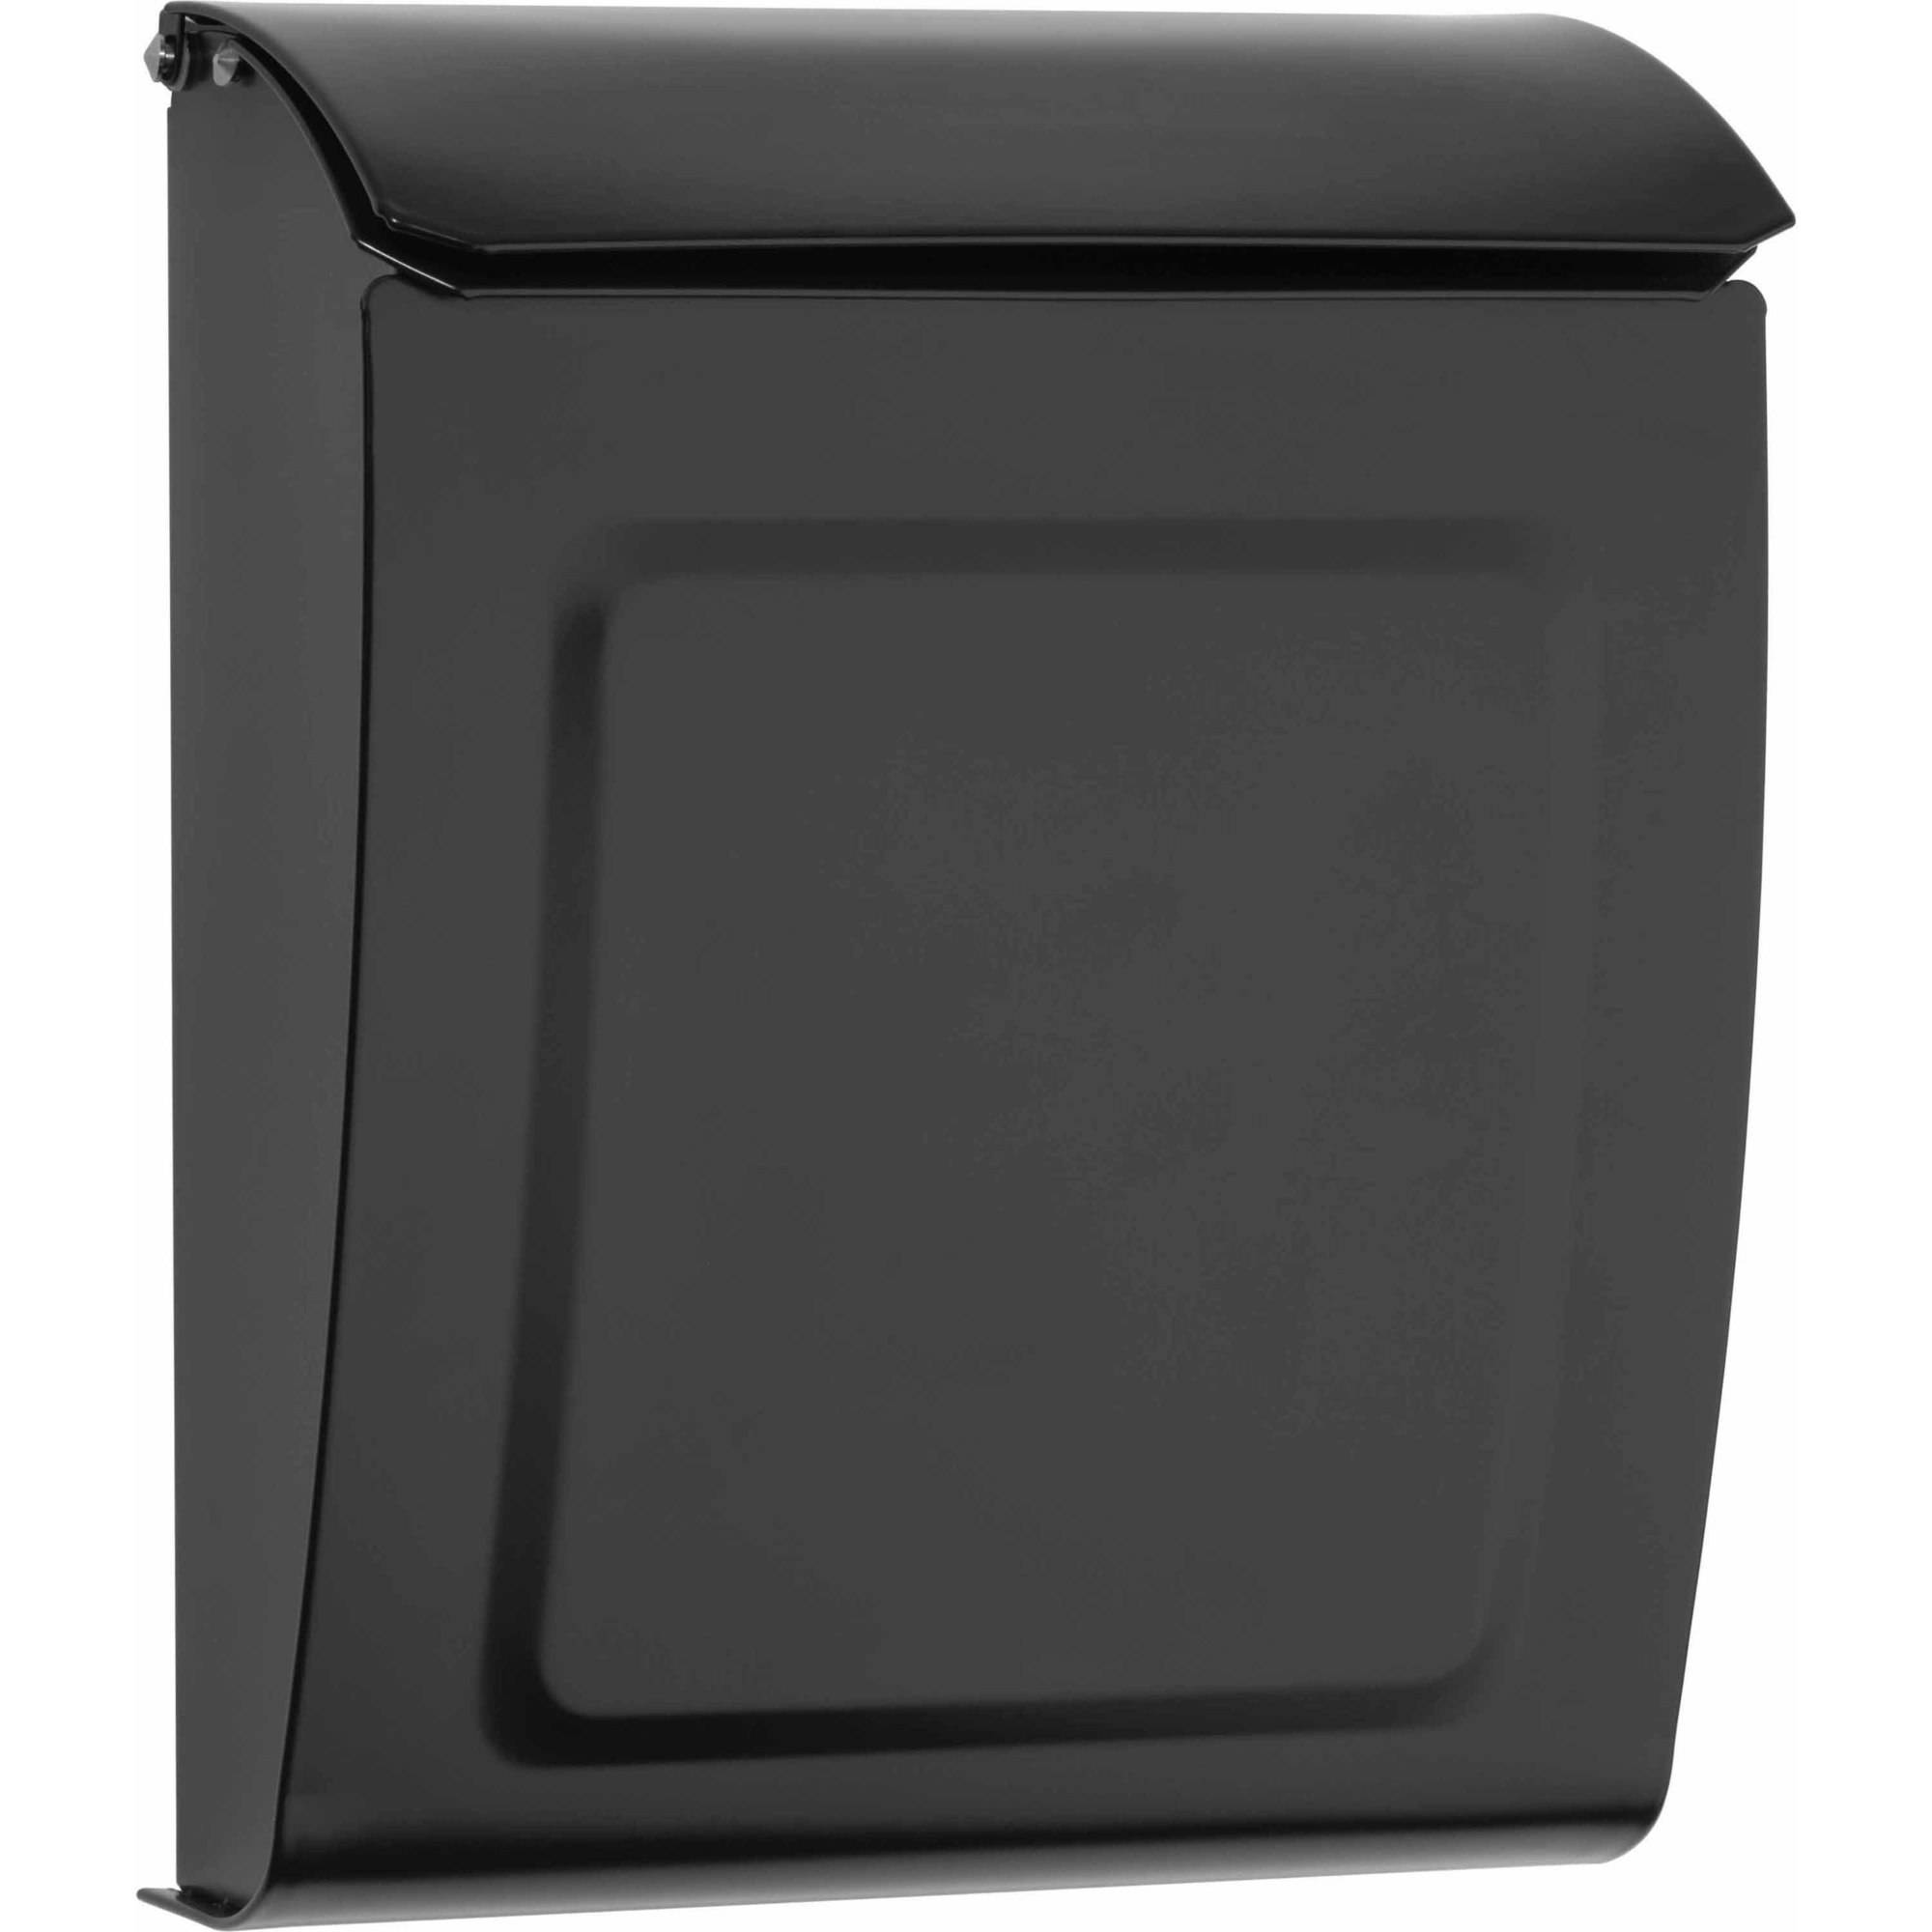 mailboxes aspen locking wall mount mailbox assorted colors - Wall Mounted Mailbox